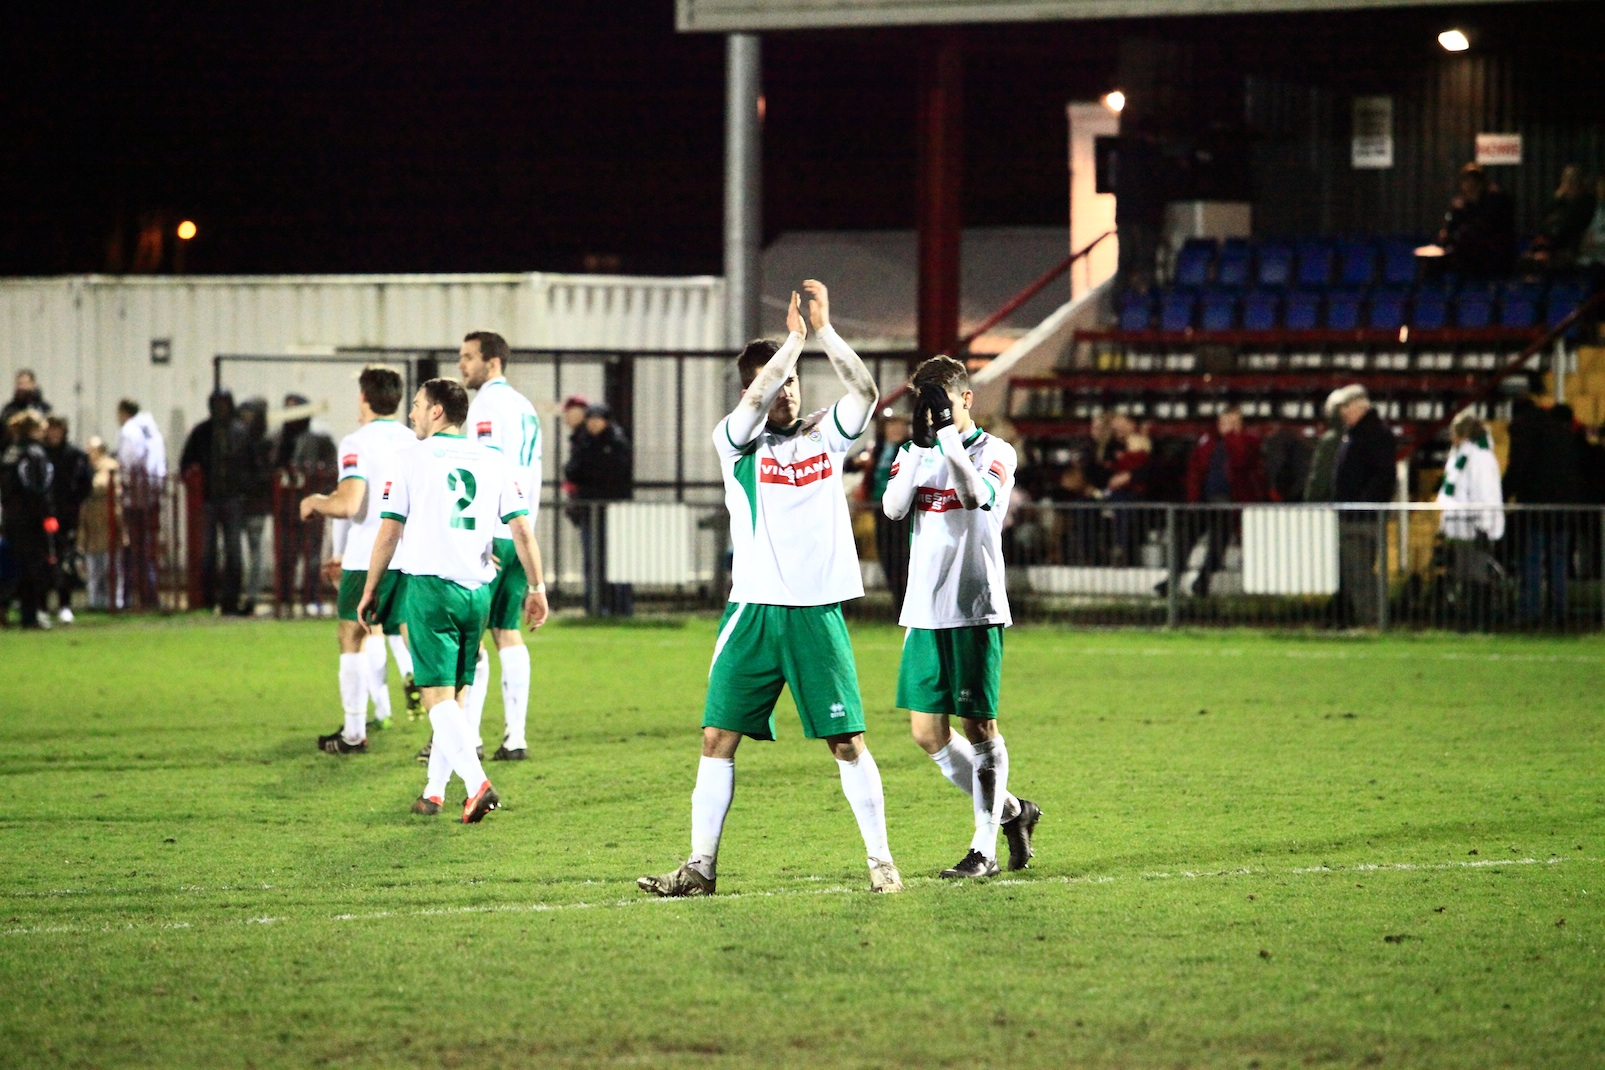 Bognor players thanking their away fans